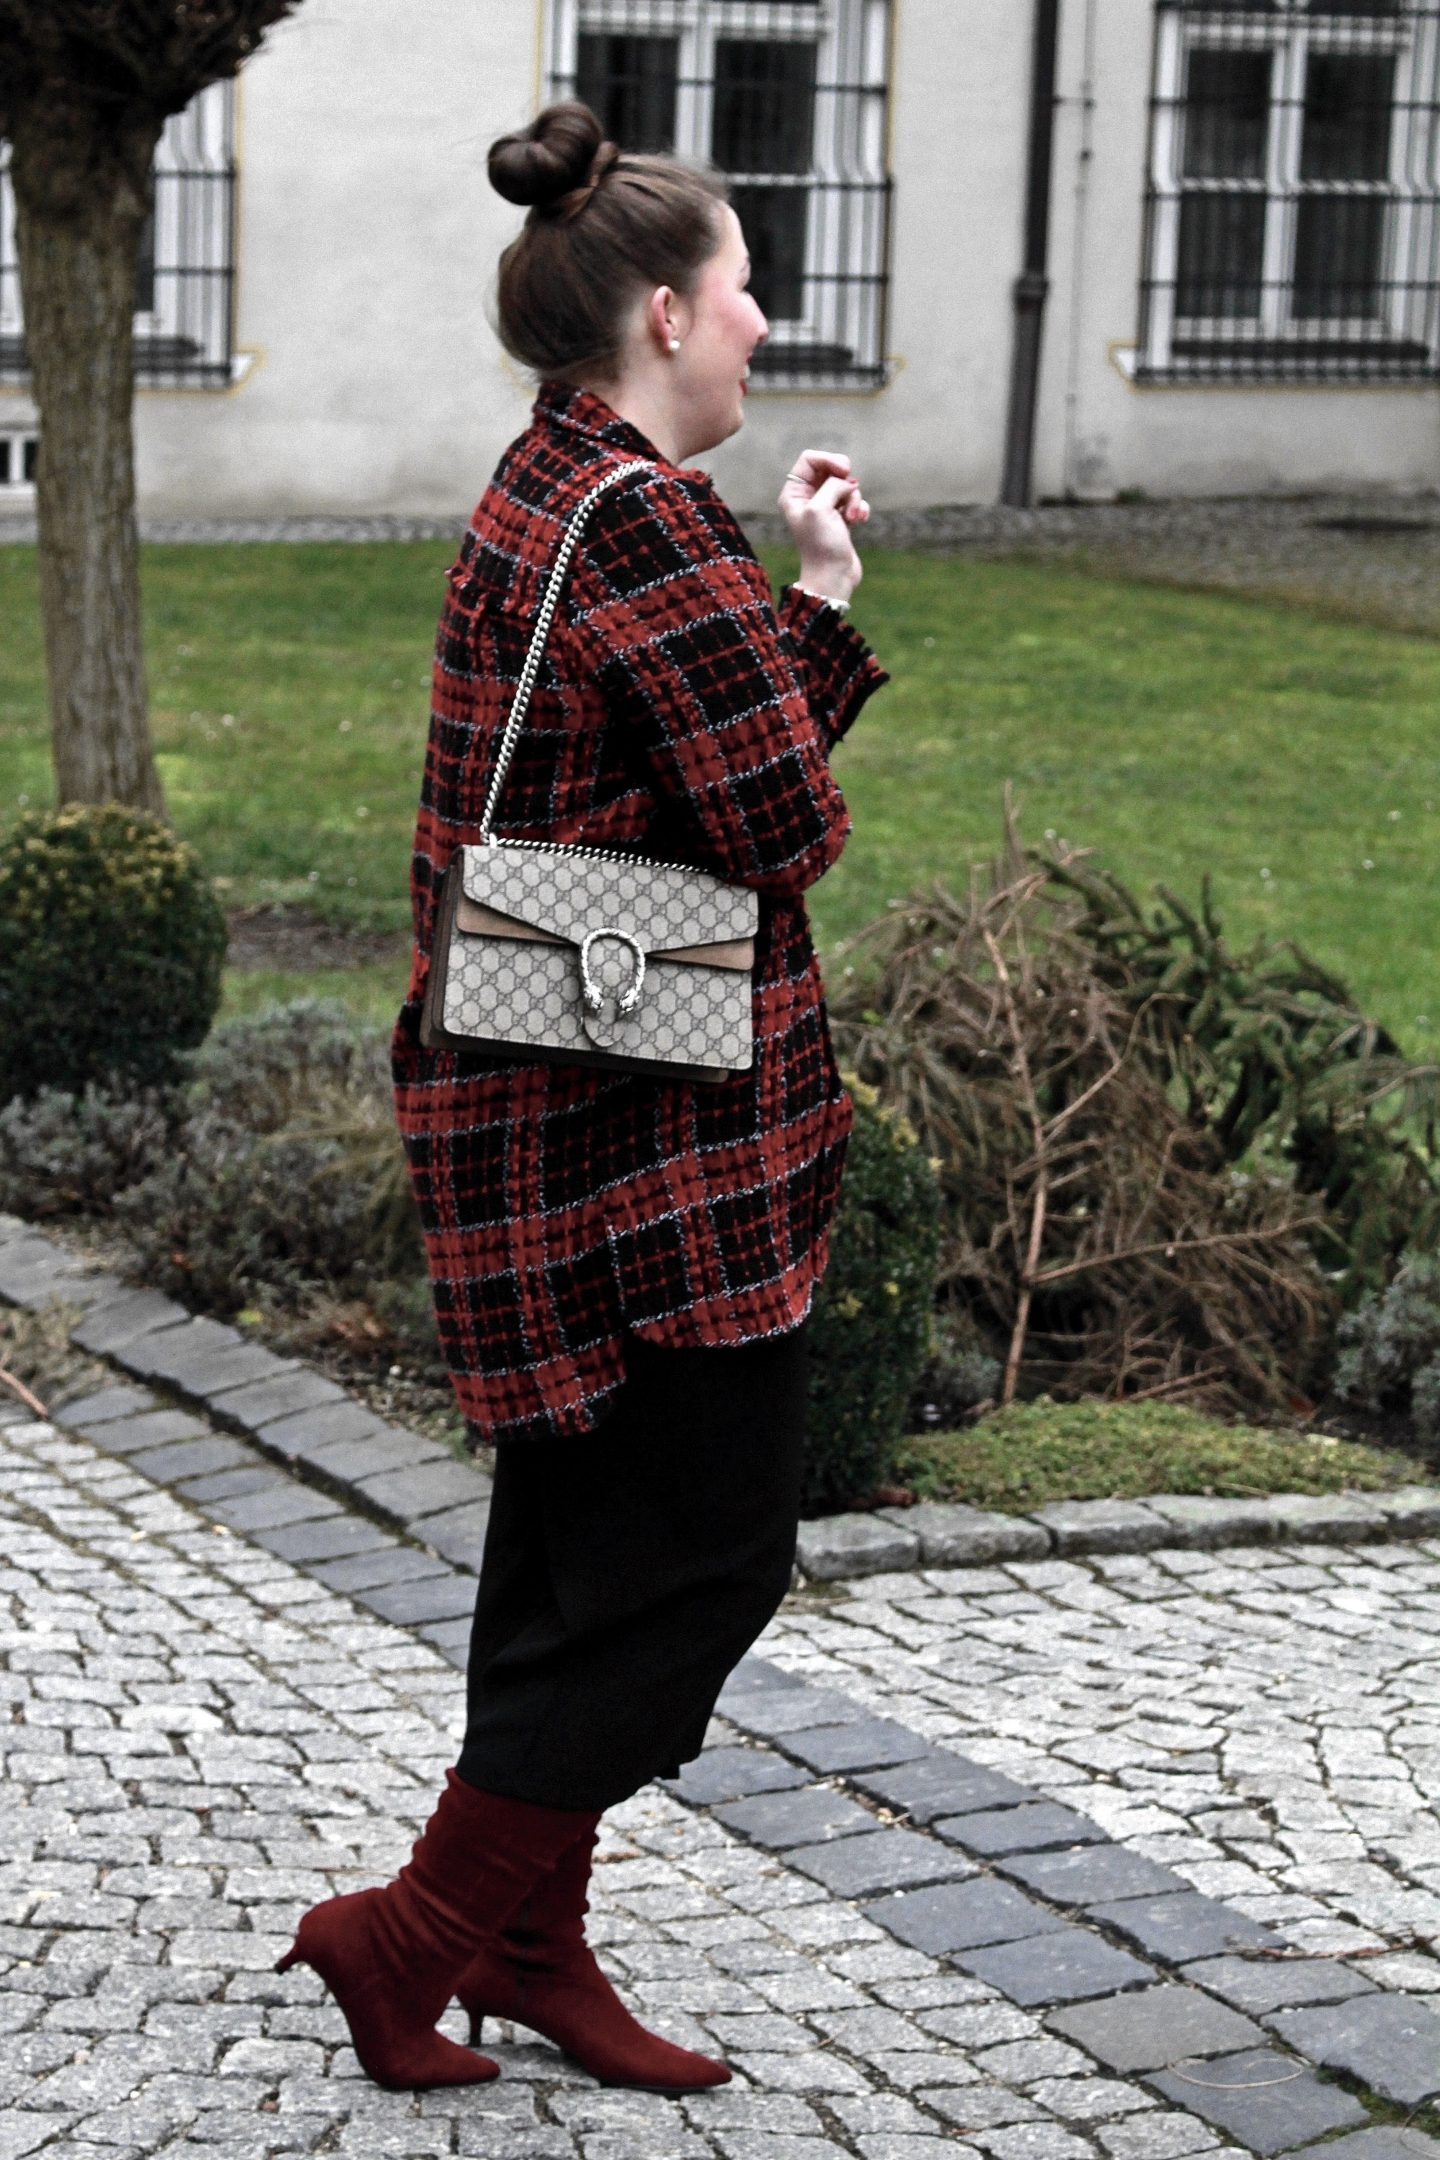 karomantel-karierter-mantel-culottes-rote-stiefel-gucci-dionysus-fashionblogger